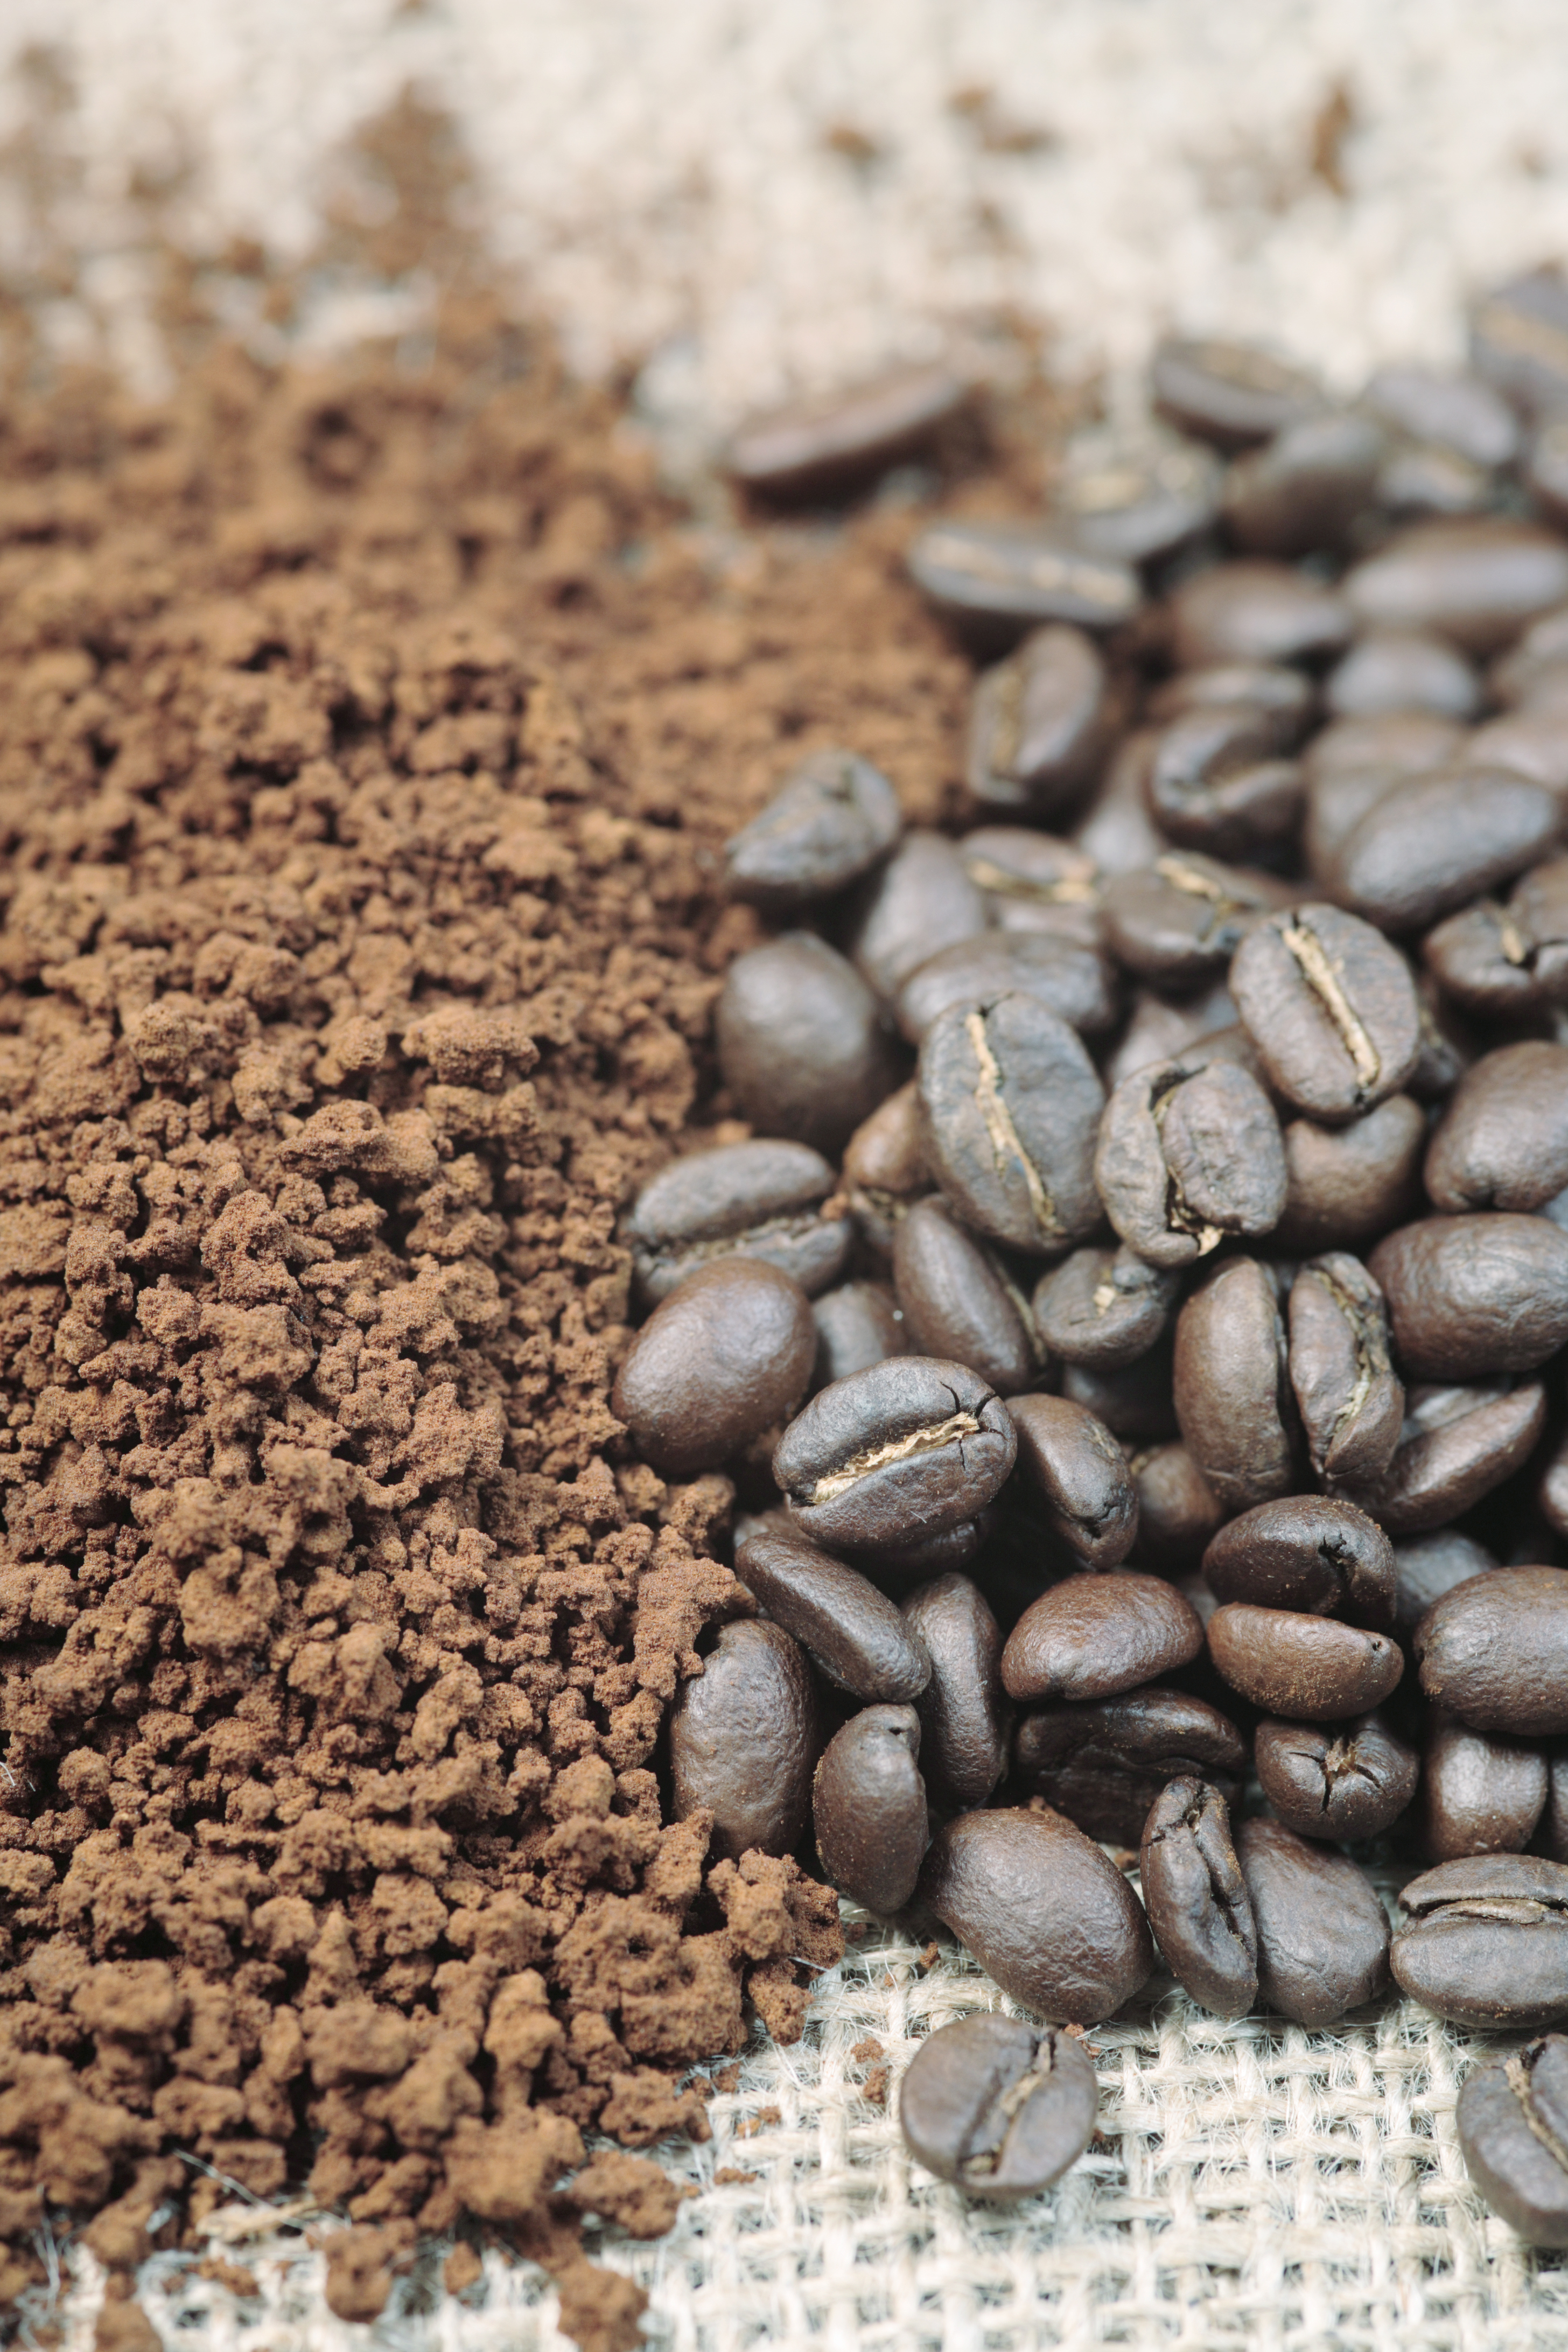 Instant coffee and fresh coffee beans from Eastern Cape, South Africa.